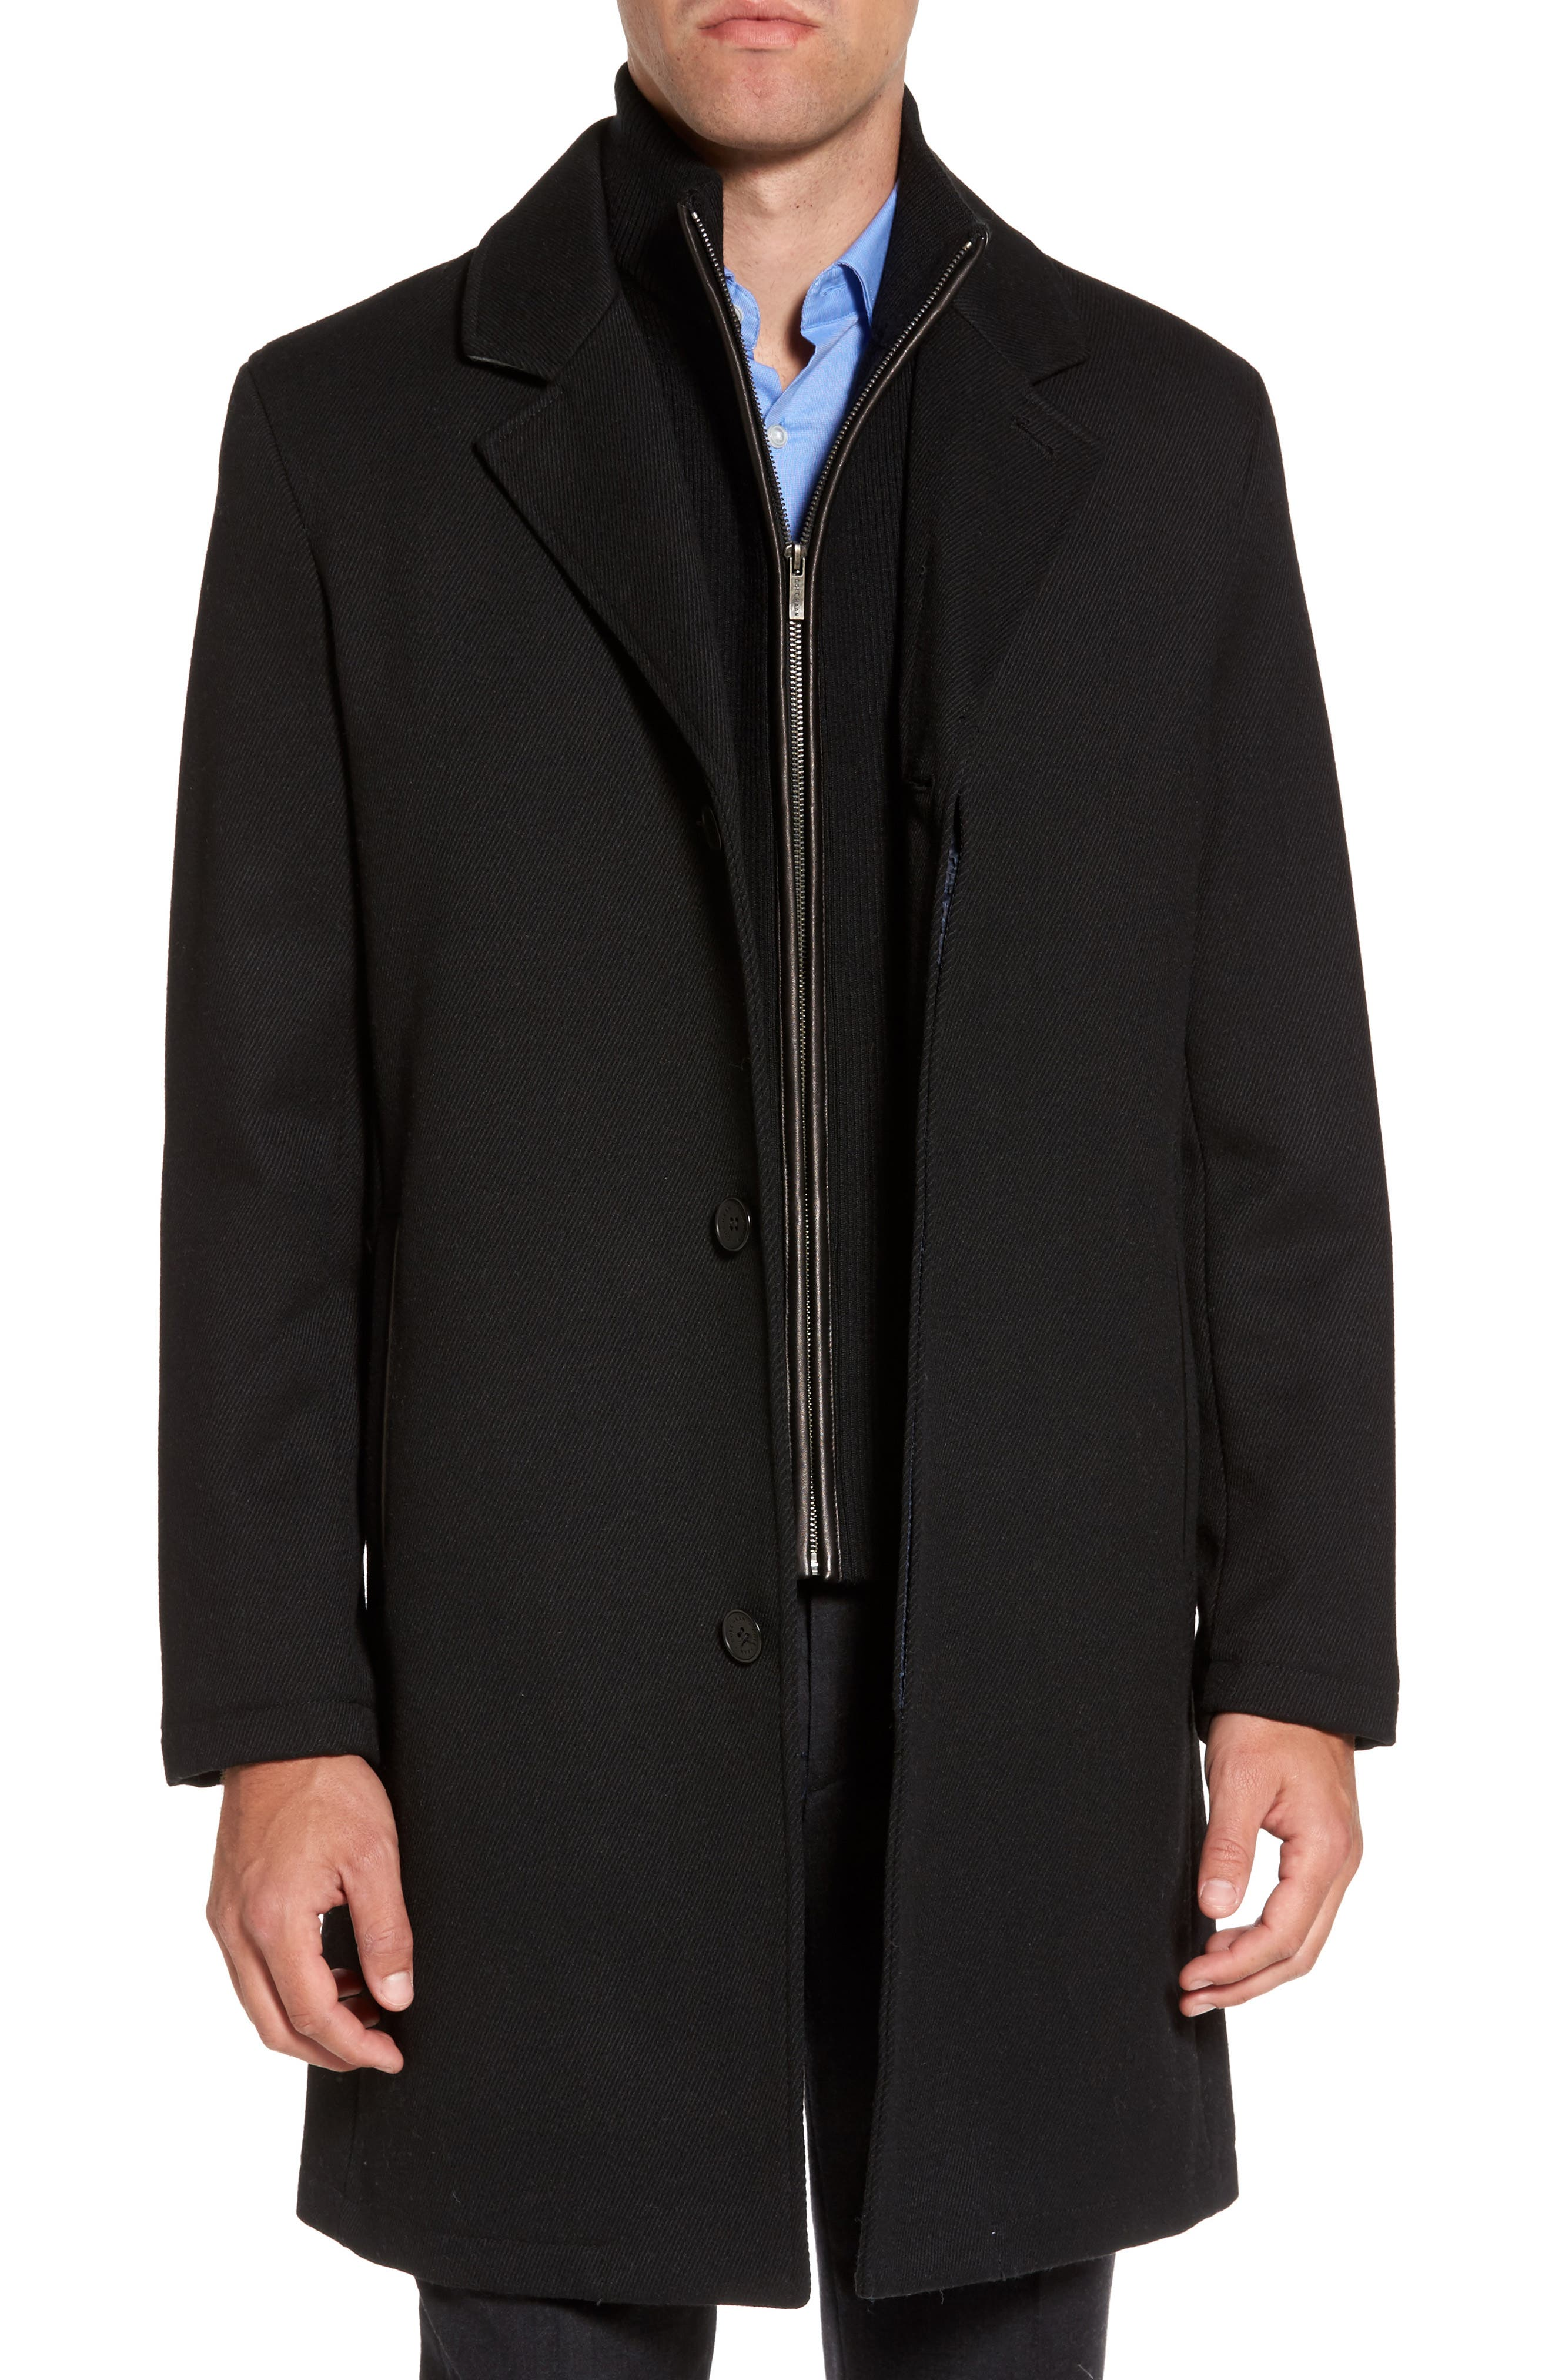 Modern Twill Topcoat with Removable Bib,                             Alternate thumbnail 3, color,                             Black